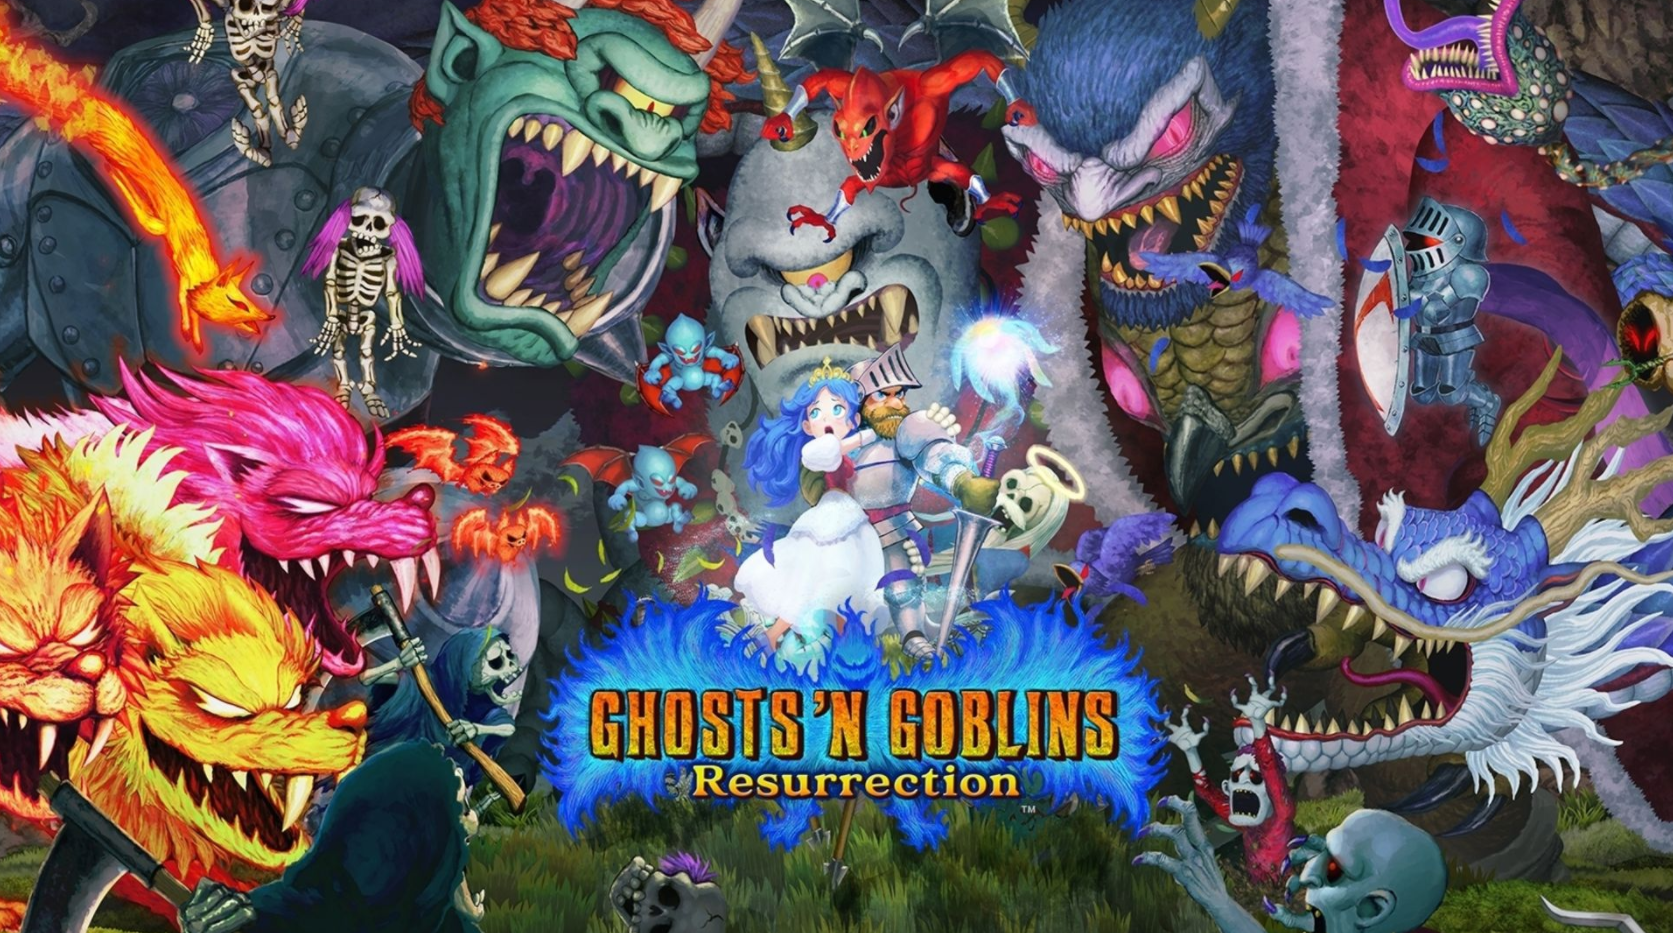 ghosts-n-goblins-resurrection-ps4-news-reviews-videos